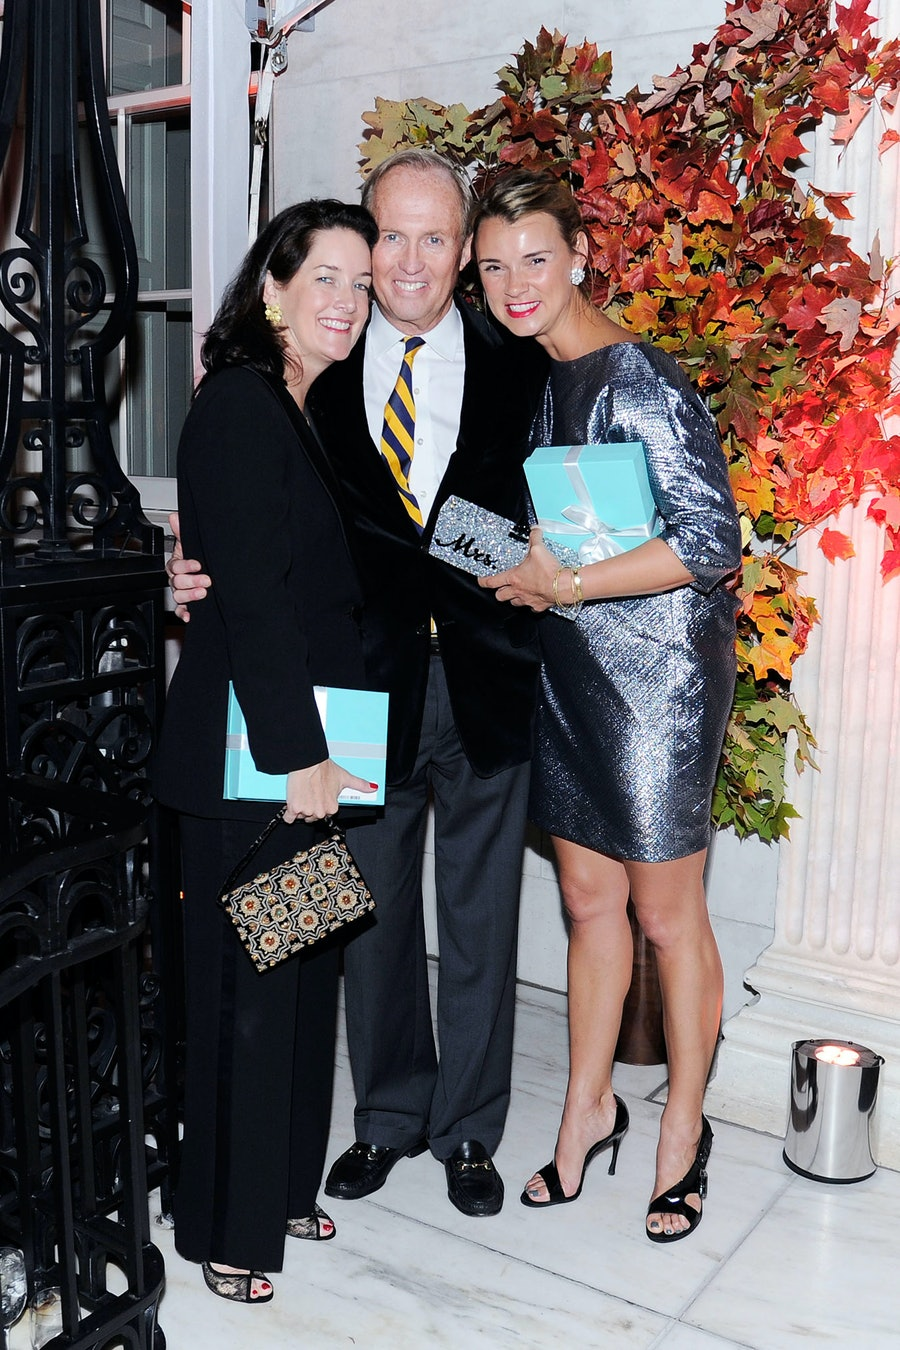 Tara Rockefeller, Mark Gilbertson, and Allison Aston